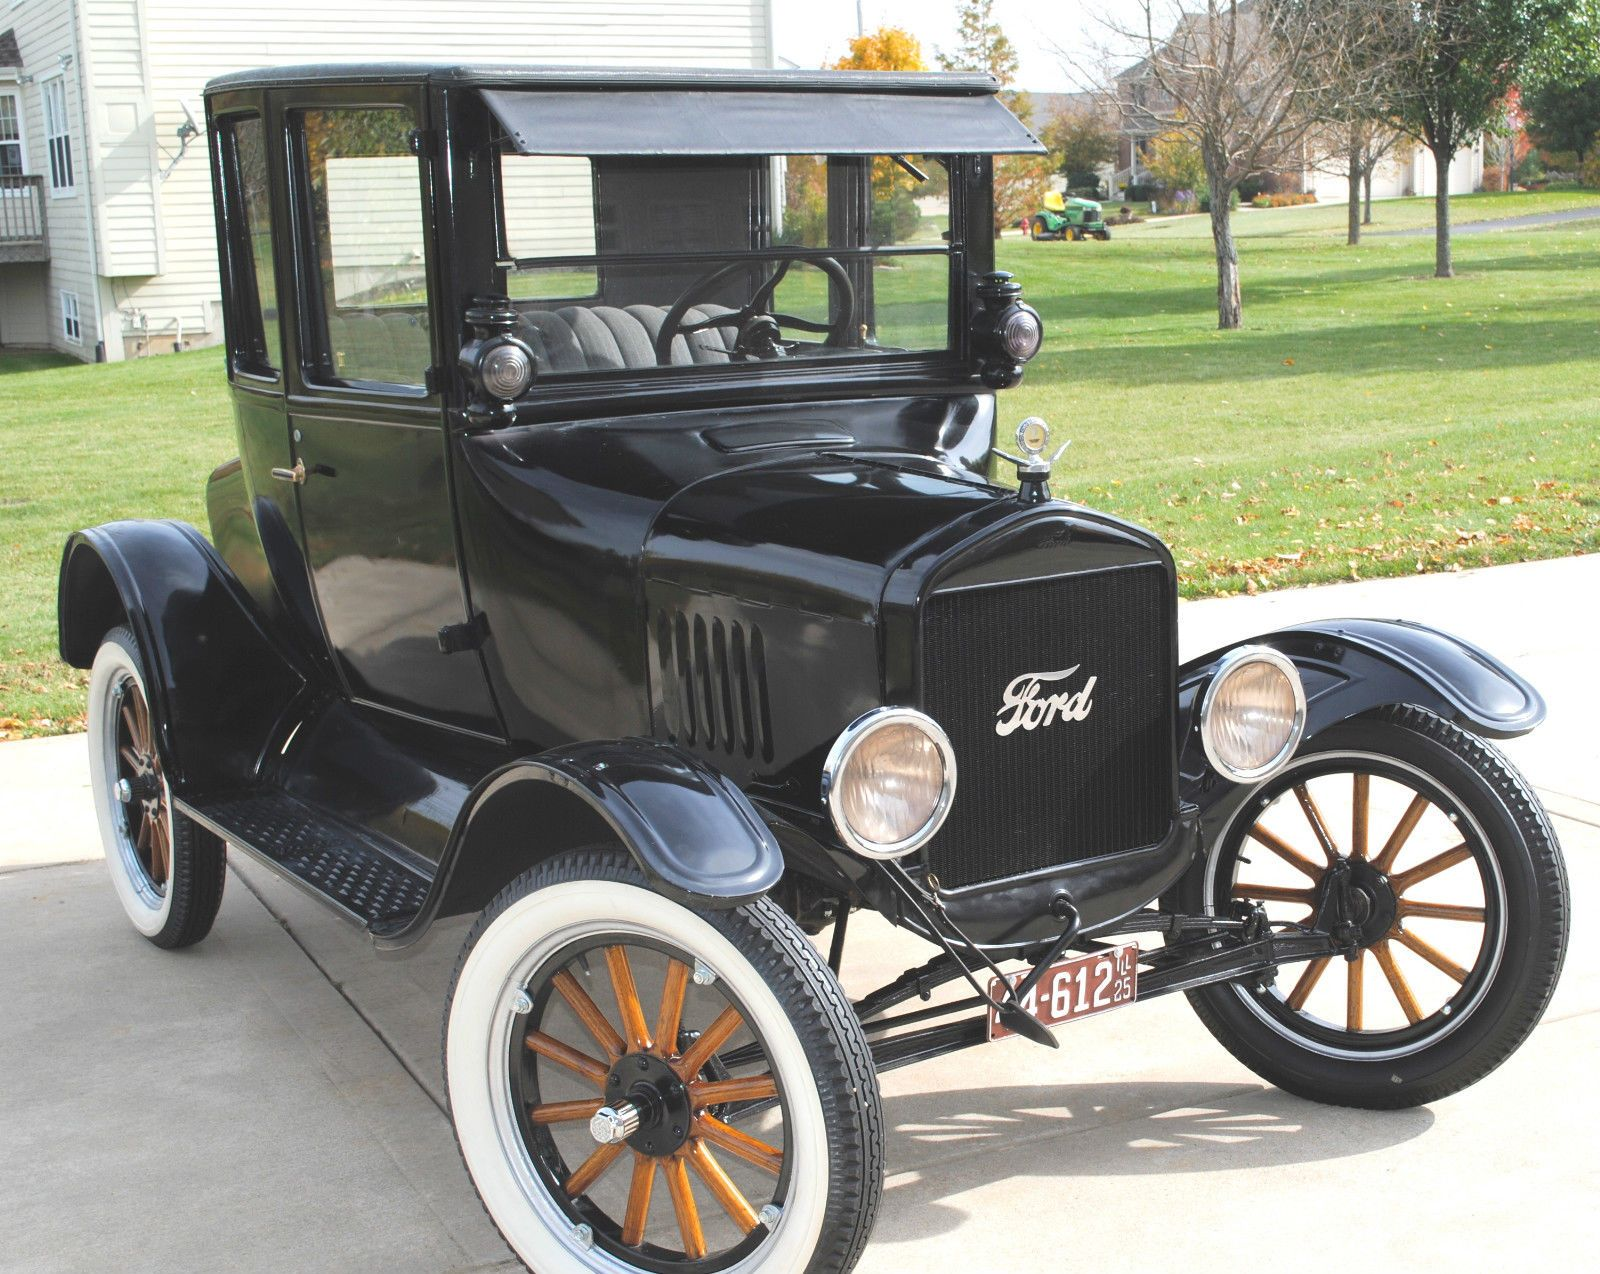 1925 Ford Model T Coupe Ford Models Ford Classic Cars Vintage Cars